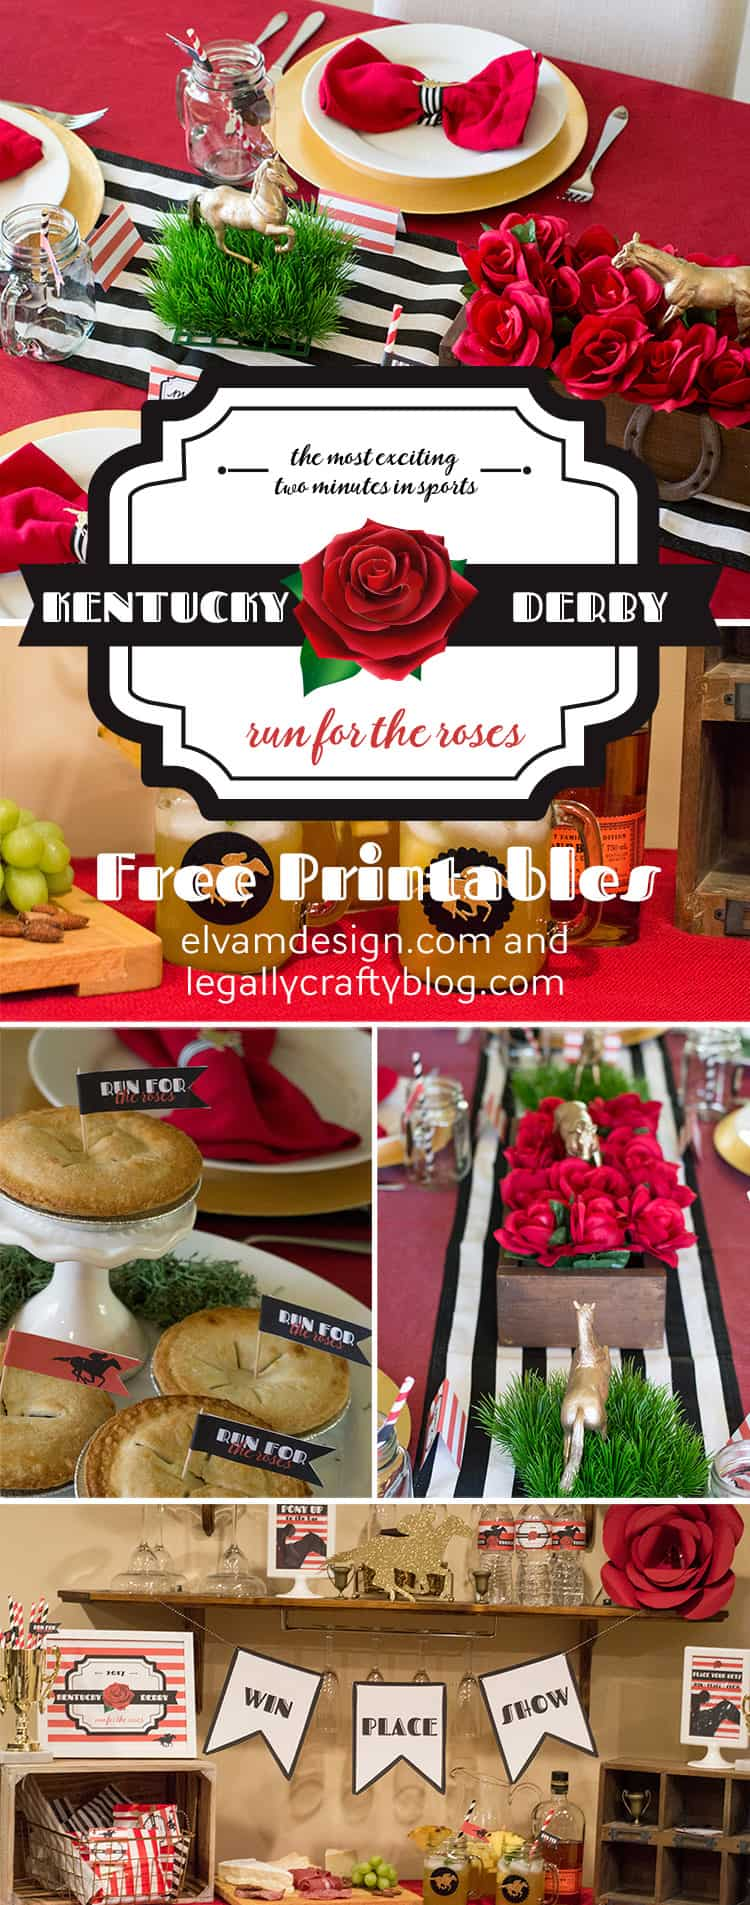 Kentucky Derby Party Ideas